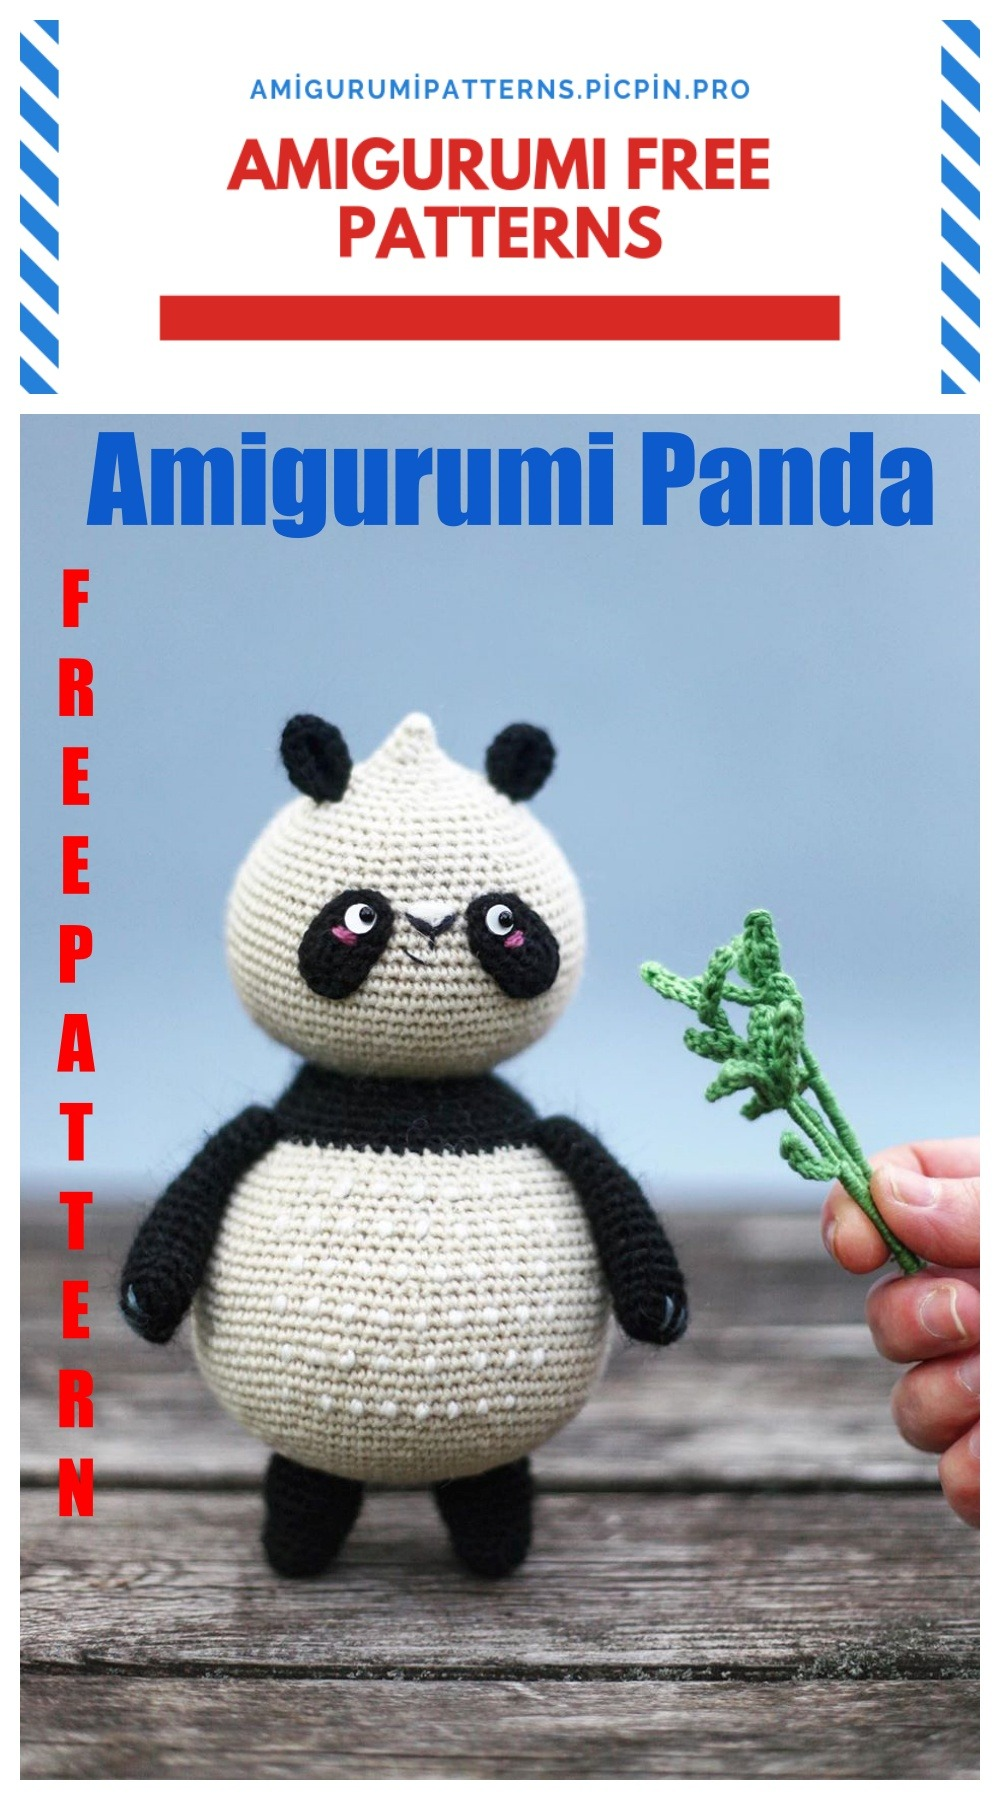 9 Crochet Panda Patterns – Cute Amigurumi Bear Toys - A More ... | 1800x1000